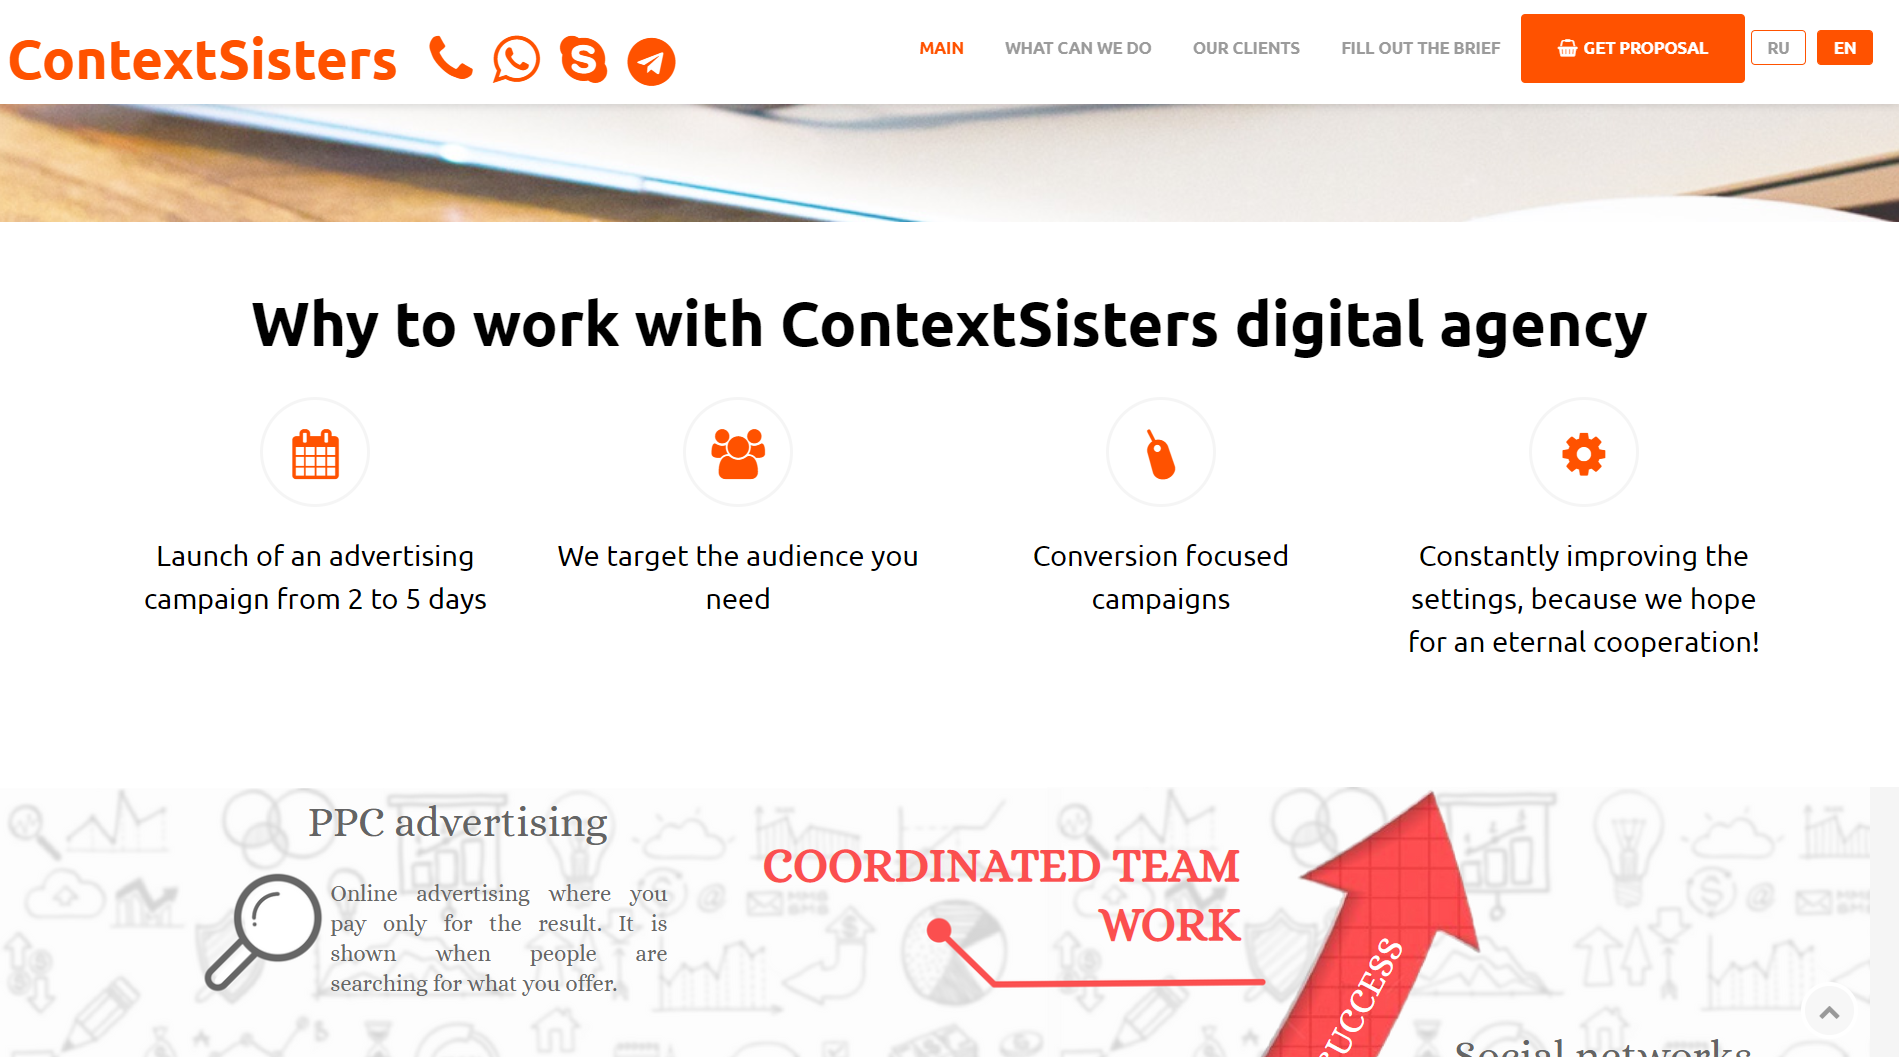 Advantages of work with Context Sisters digital agency